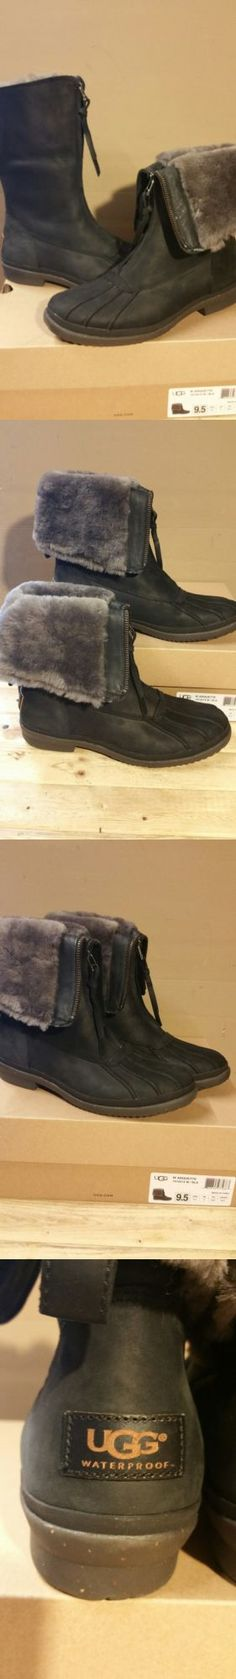 Women Boots: Ugg Australia Arquette Black Leather Waterproof Womens Boots Size 9.5Us BUY IT NOW ONLY: $129.0